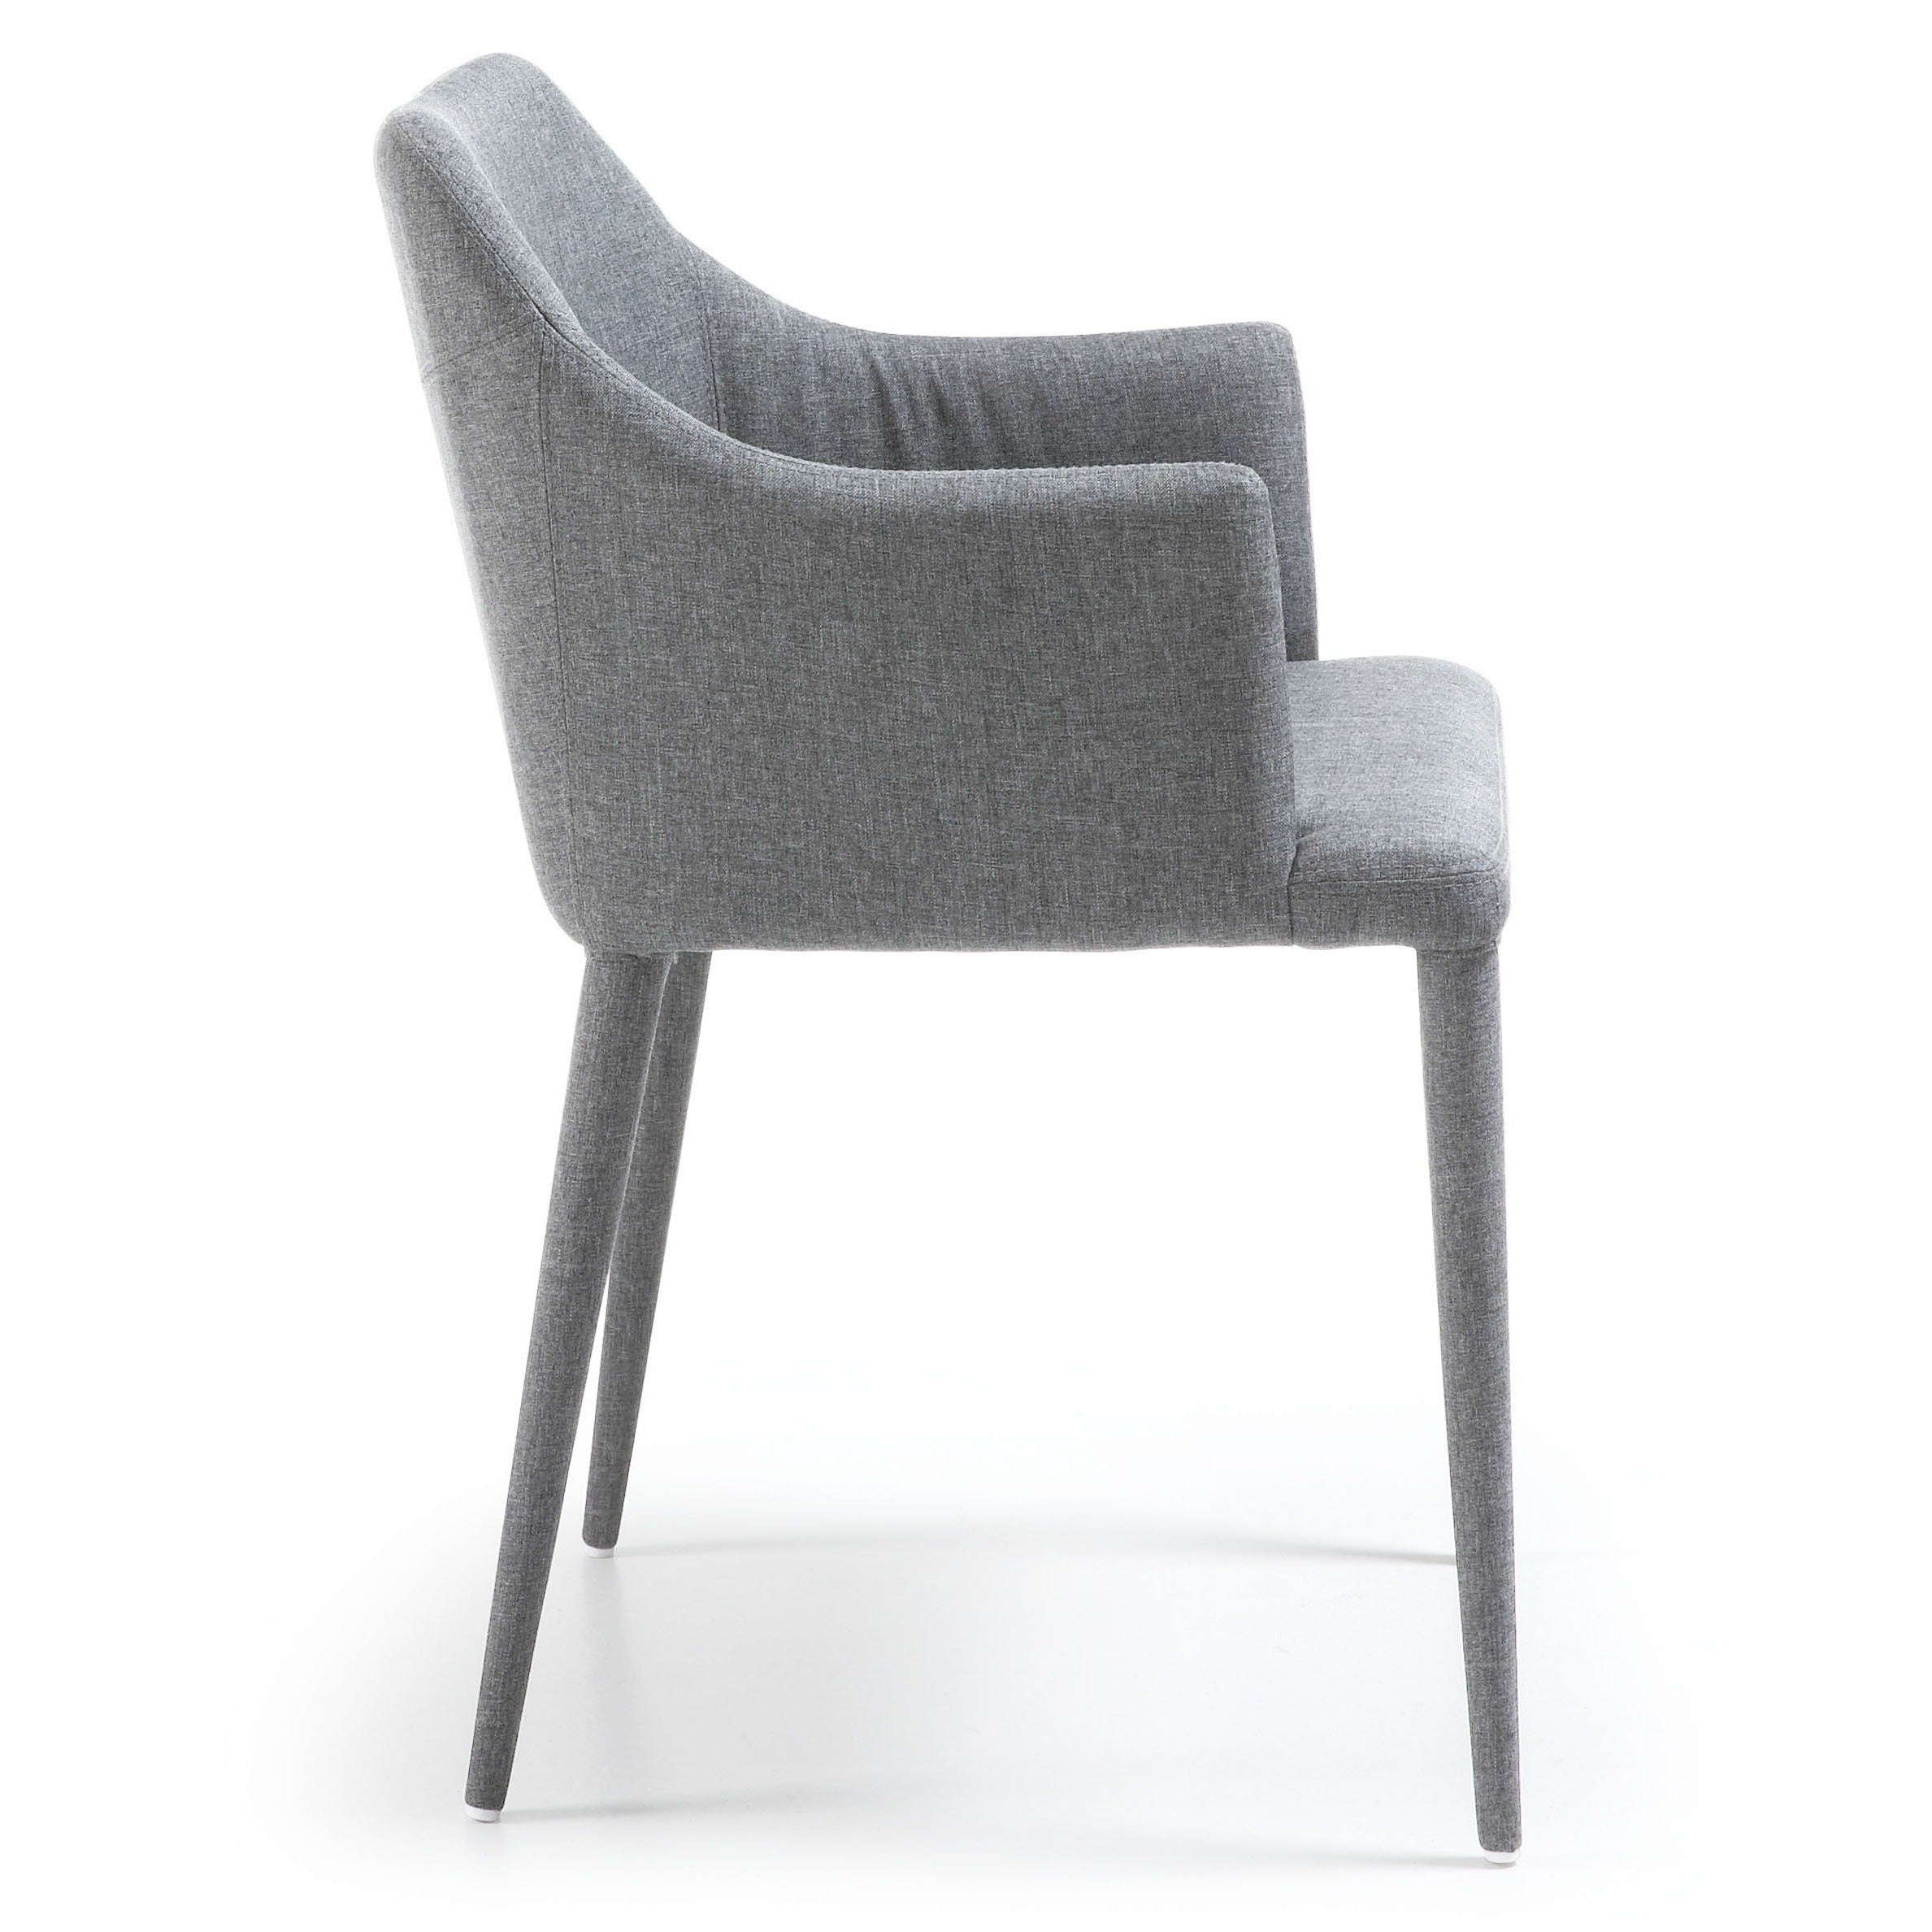 Danni chair Upholstered in Light Grey Fabric